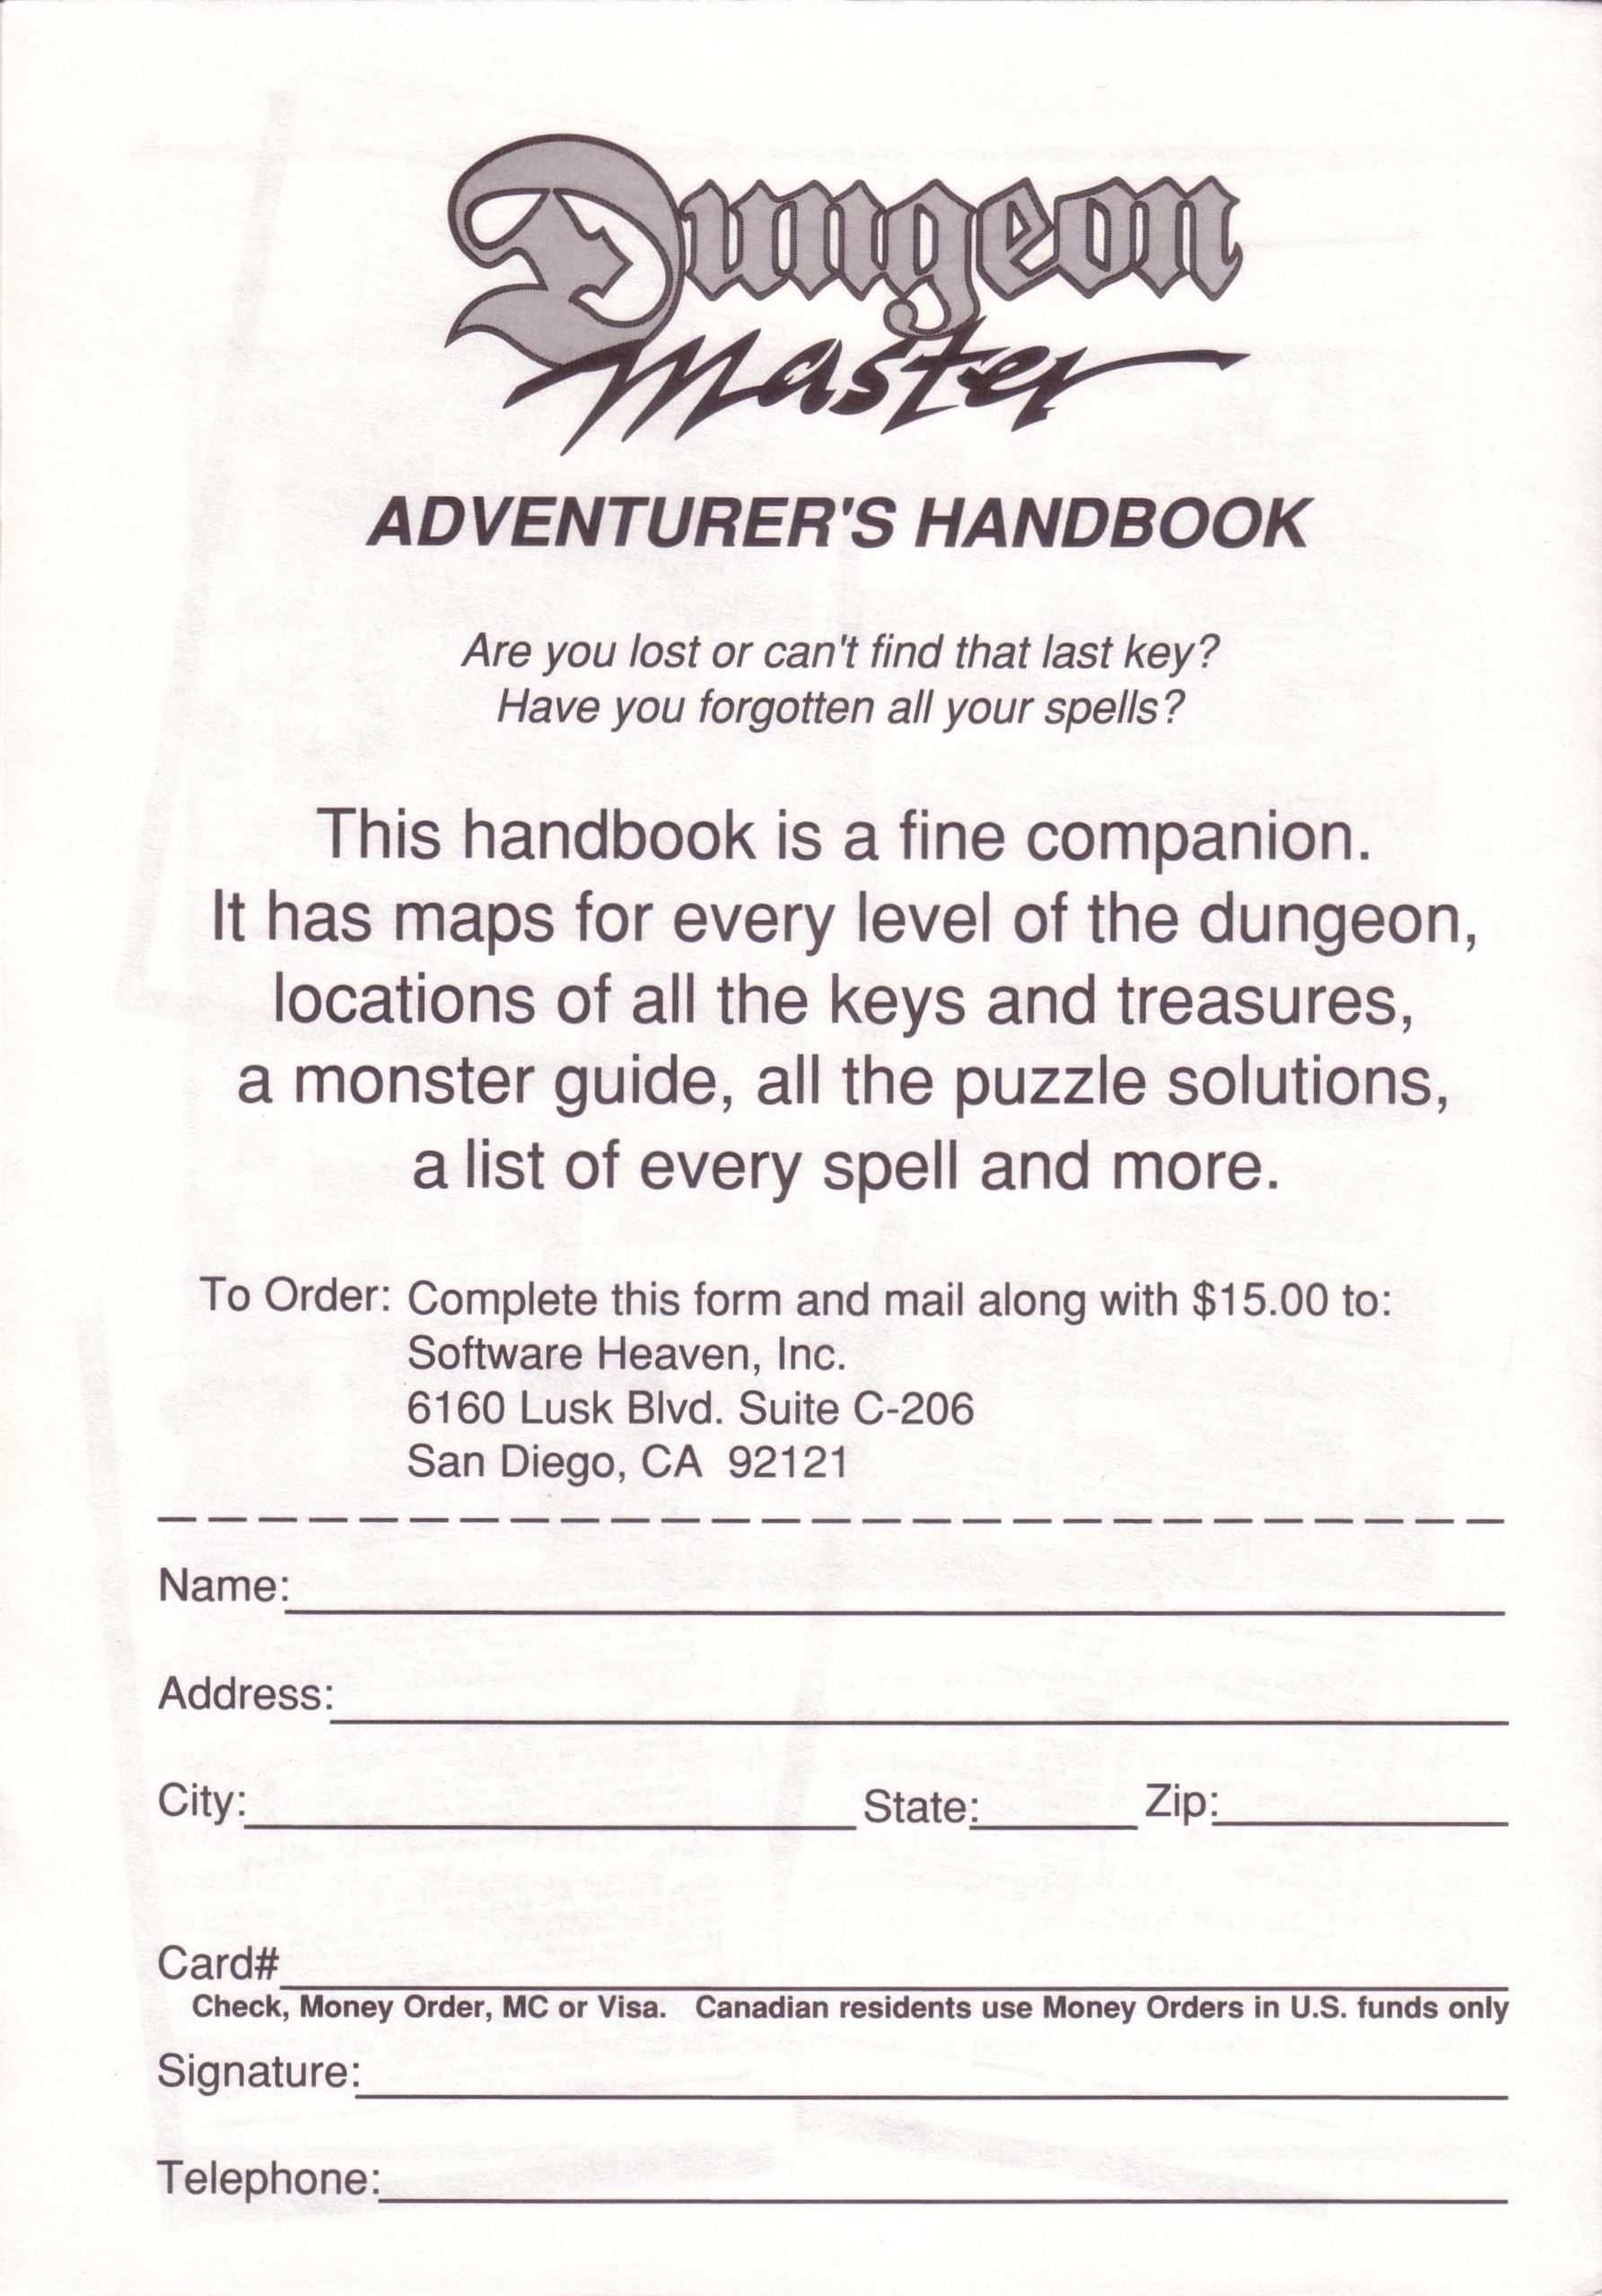 Dungeon Master for PC with FTL Sound Adapter (US Release) - Adventurer's Handbook Advertisement Page 4